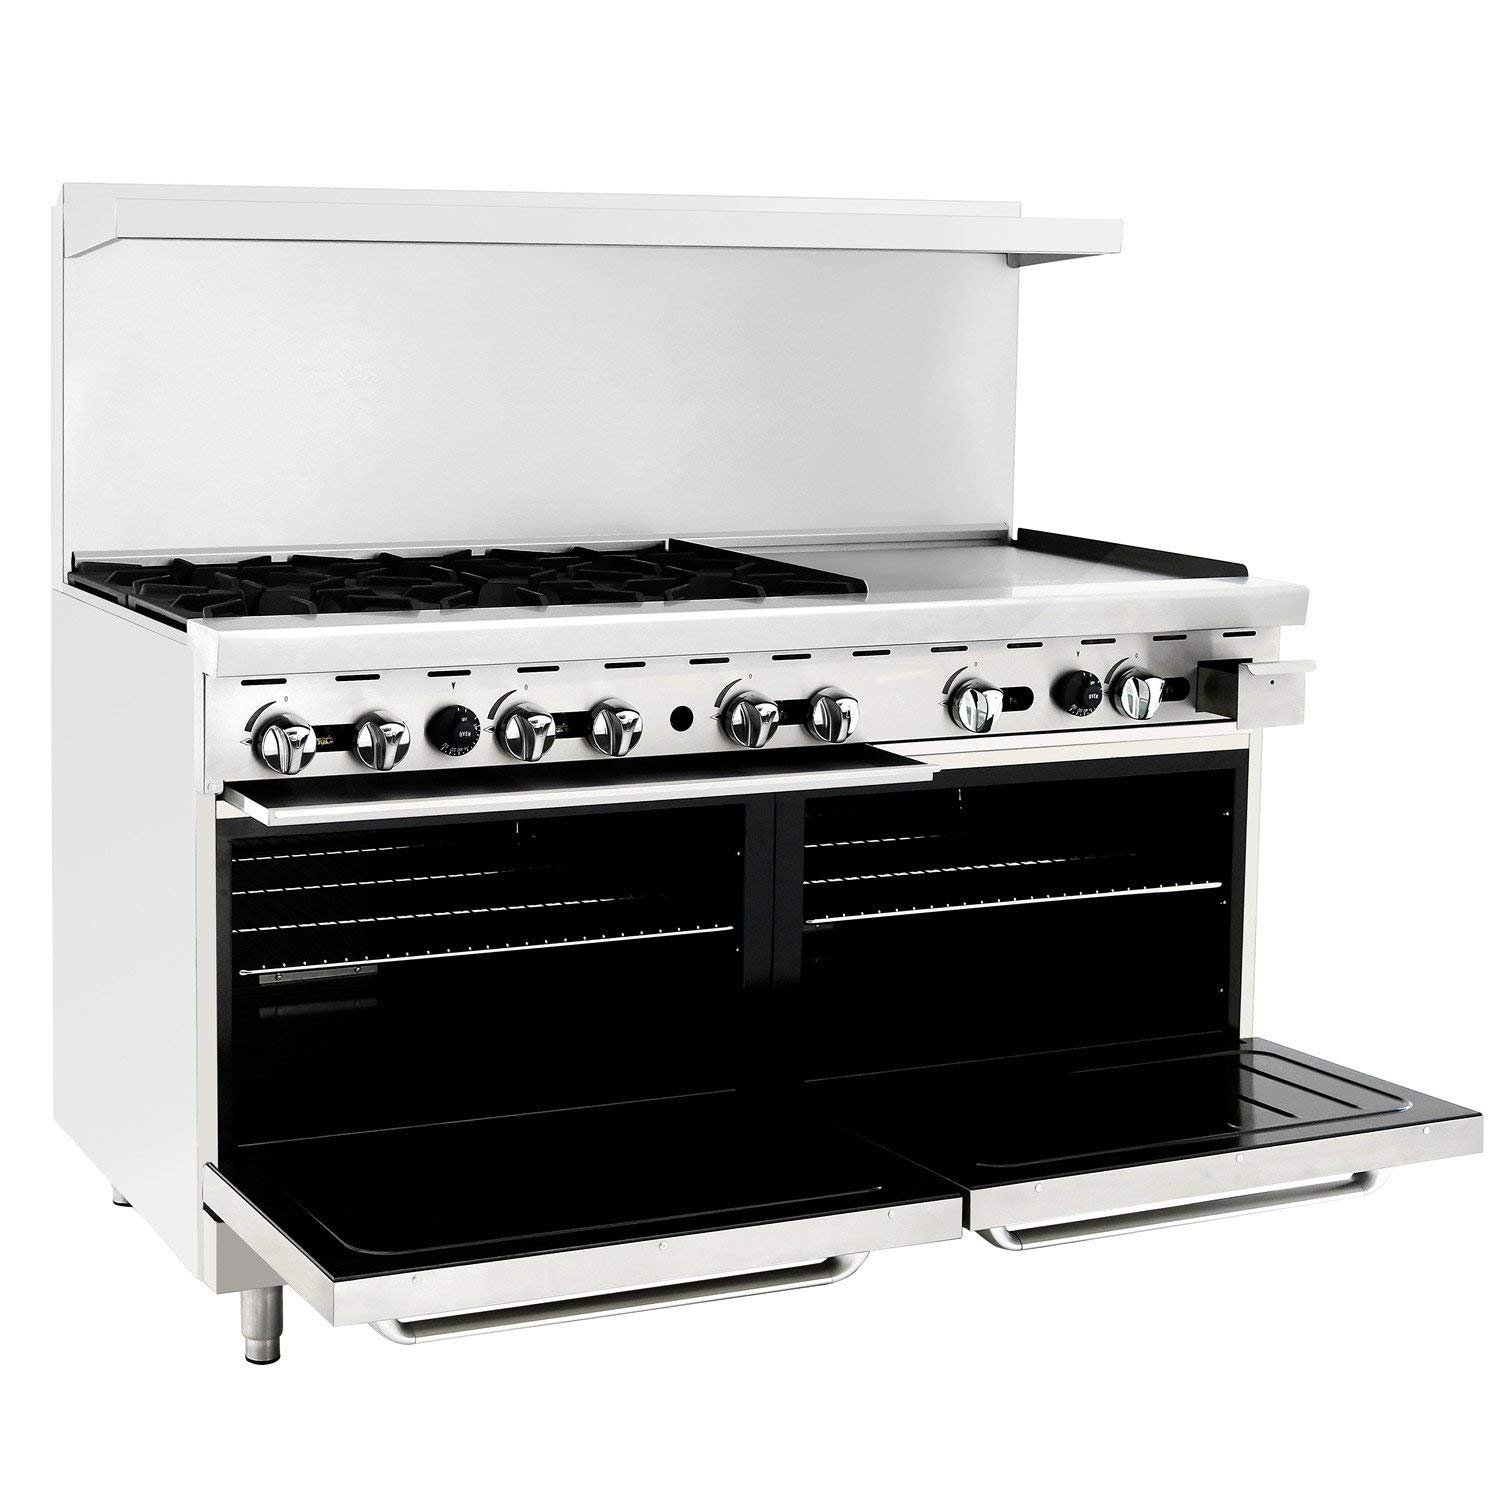 6-hurner-hot-plates-large-capacity-commercial-oven